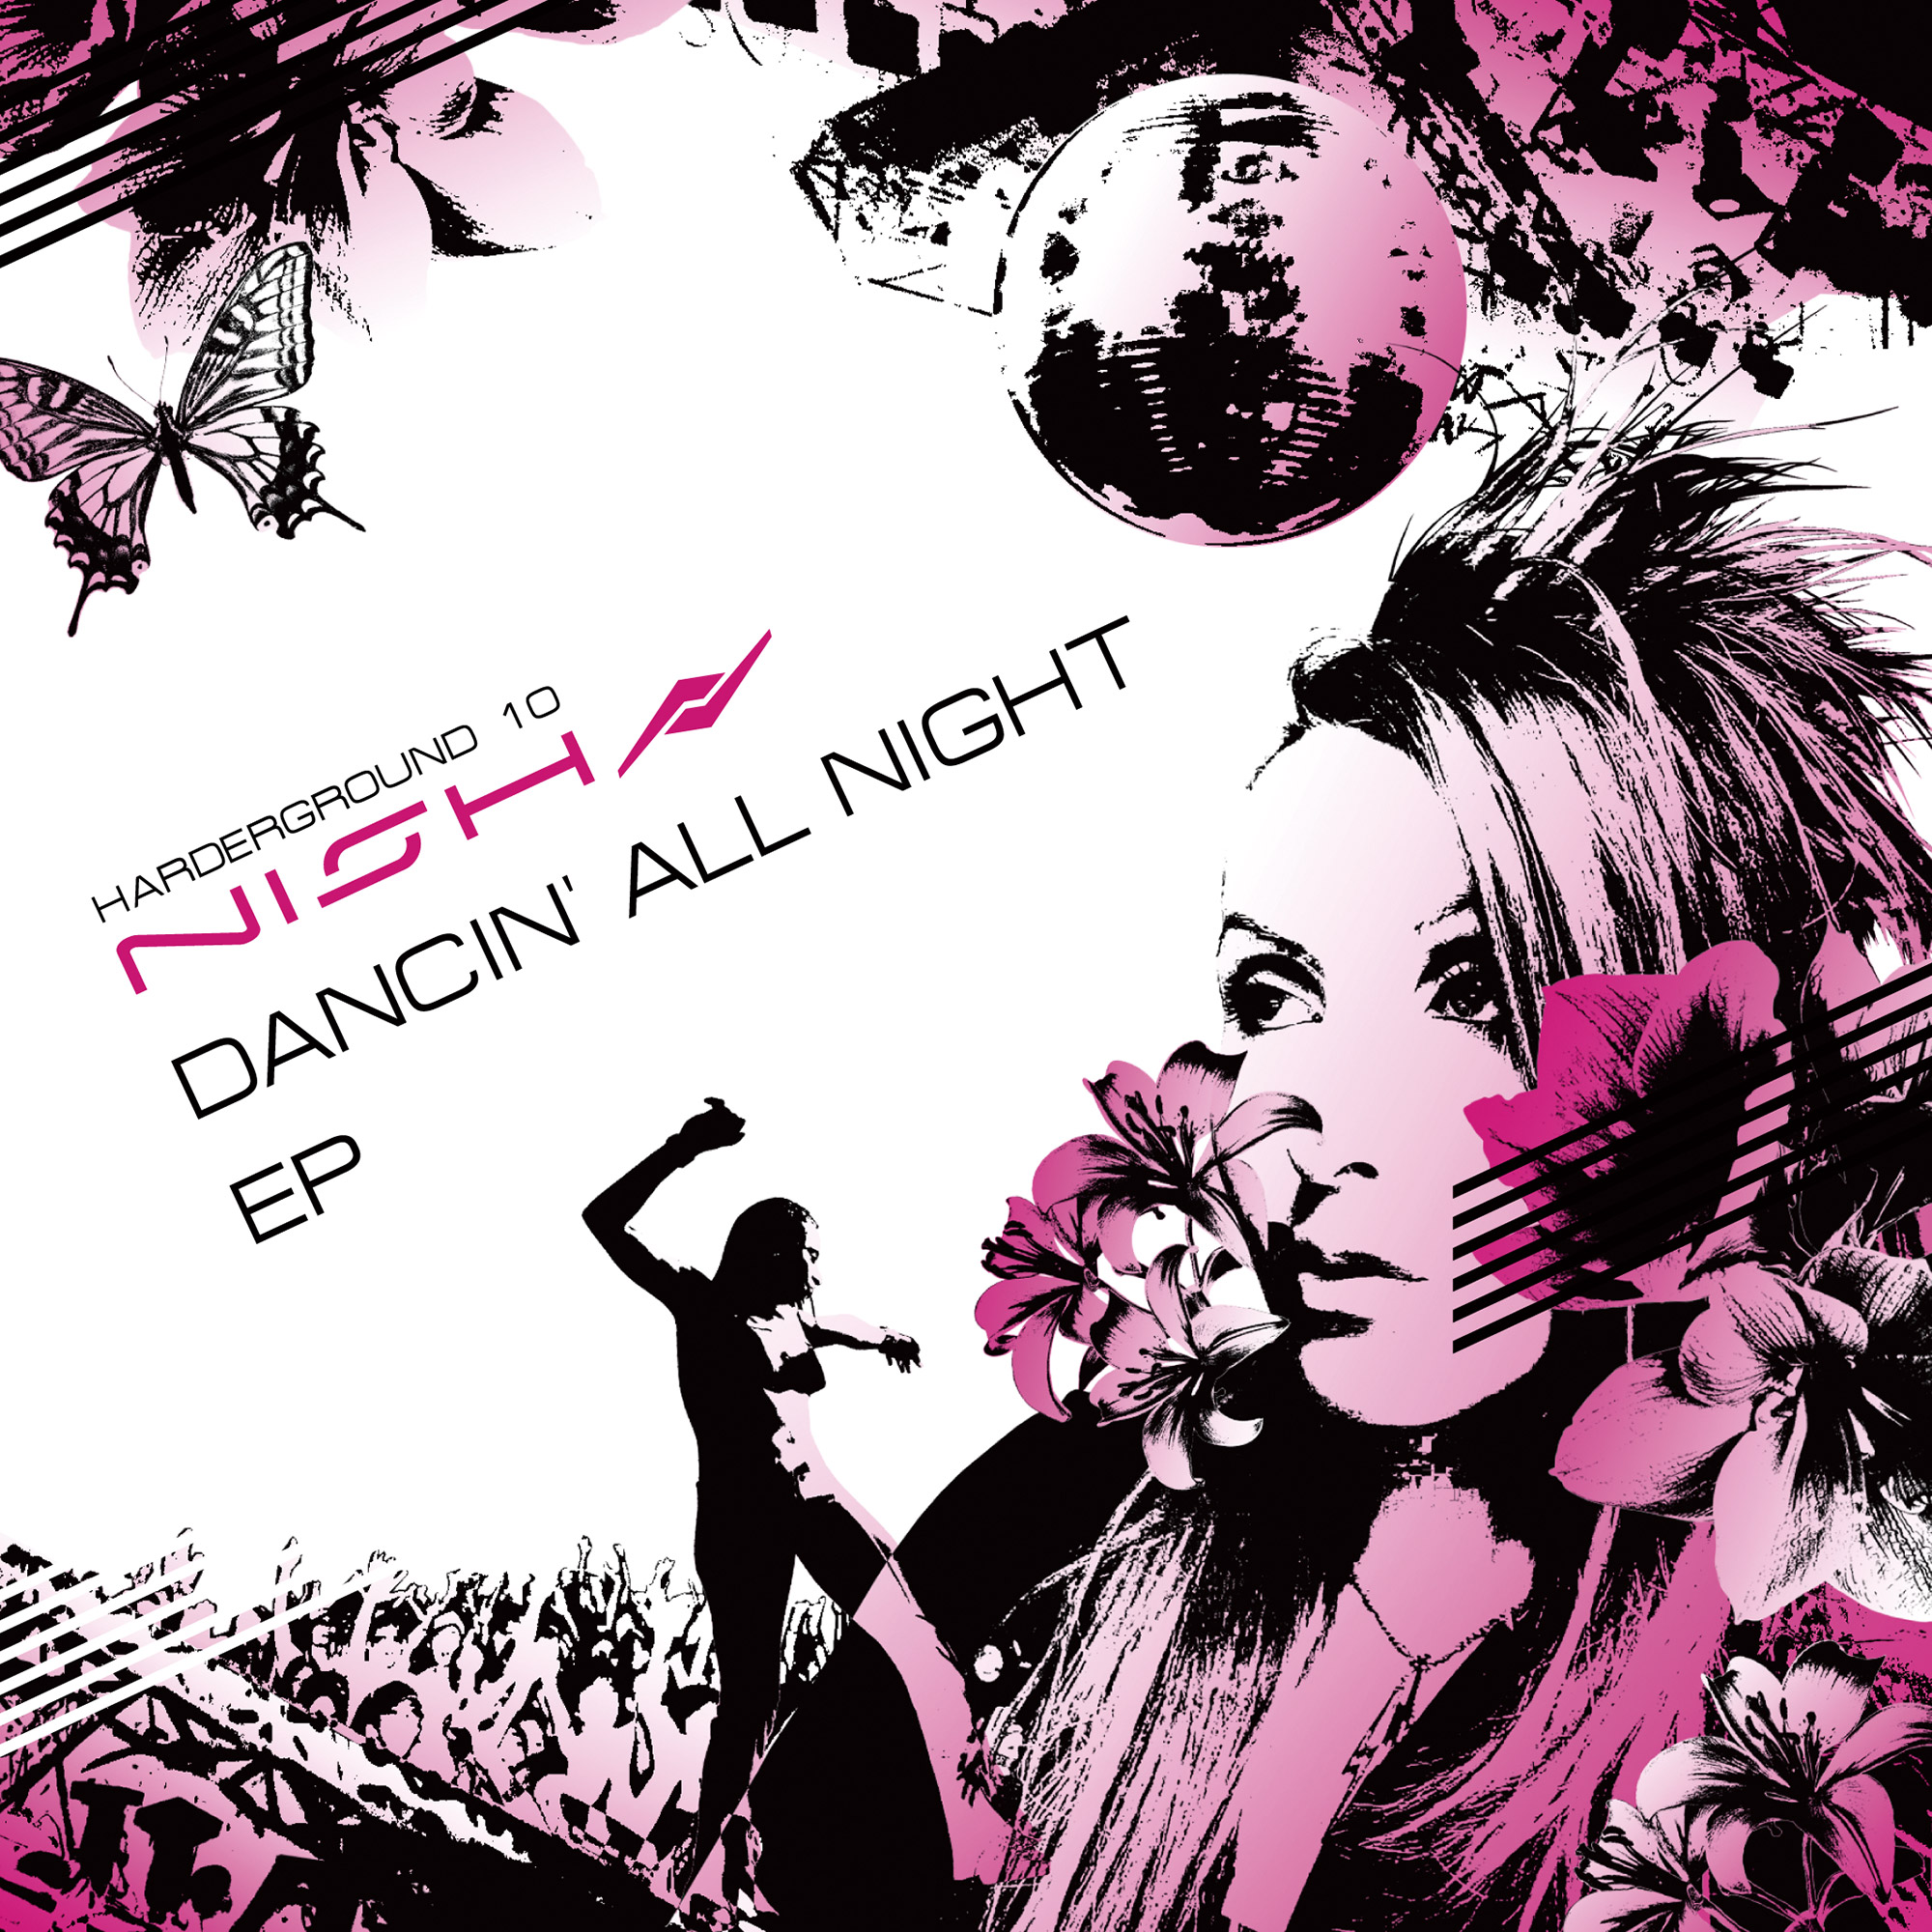 DANCIN' ALL NIGHT EP